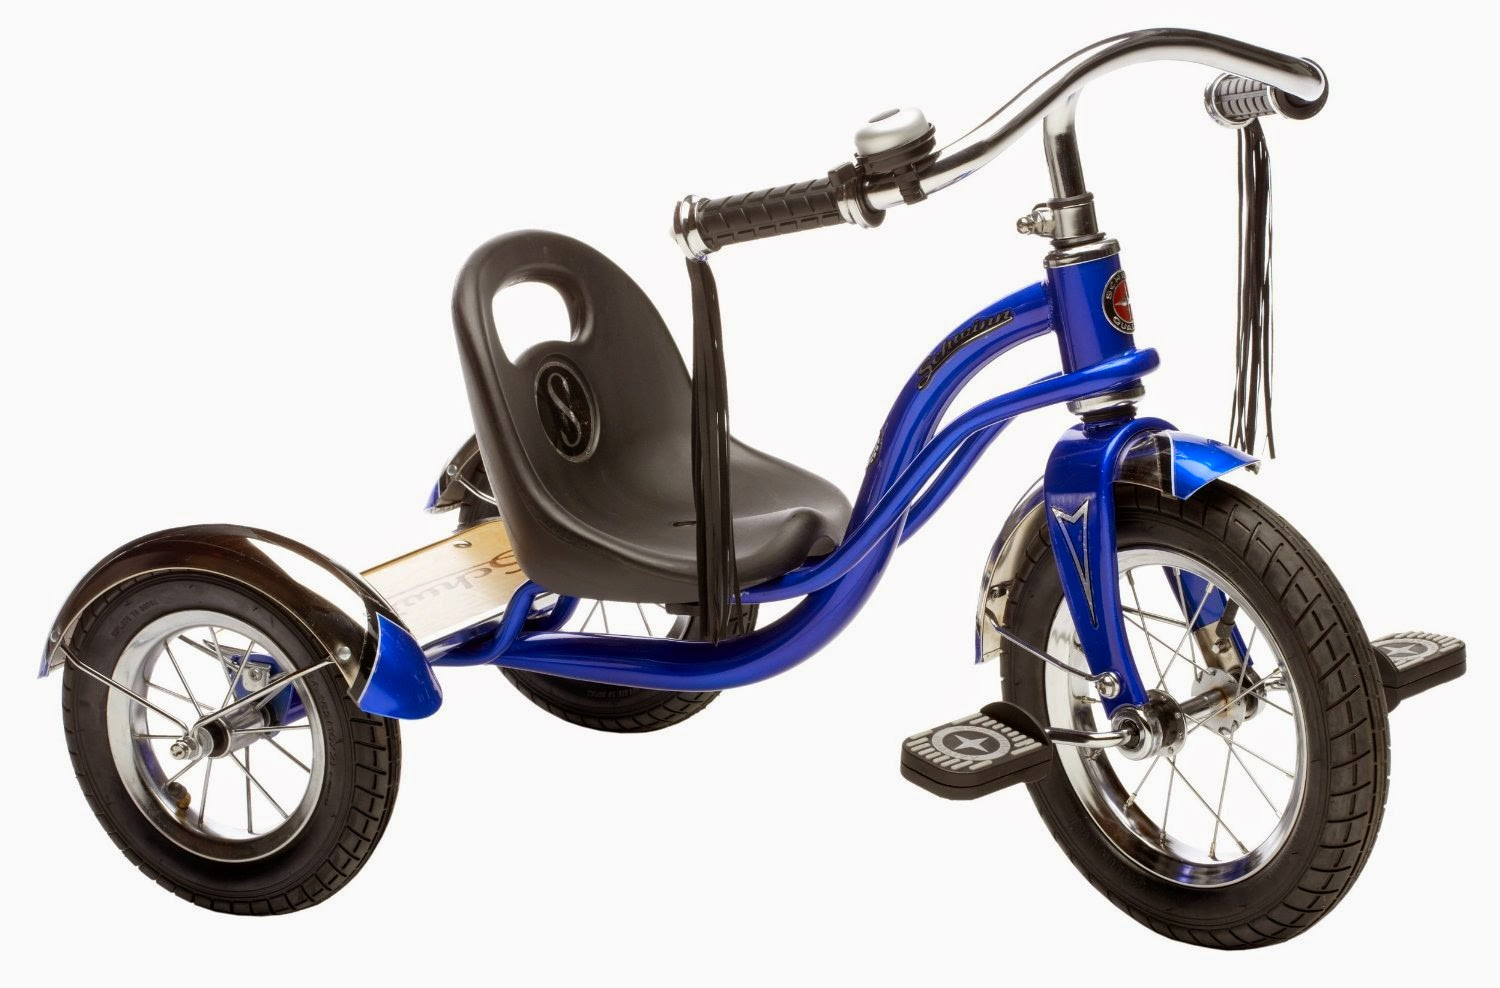 d184f48350e Schwinn Roadster Trike, blue, best kids tricycle, with low center of  gravity to. >>